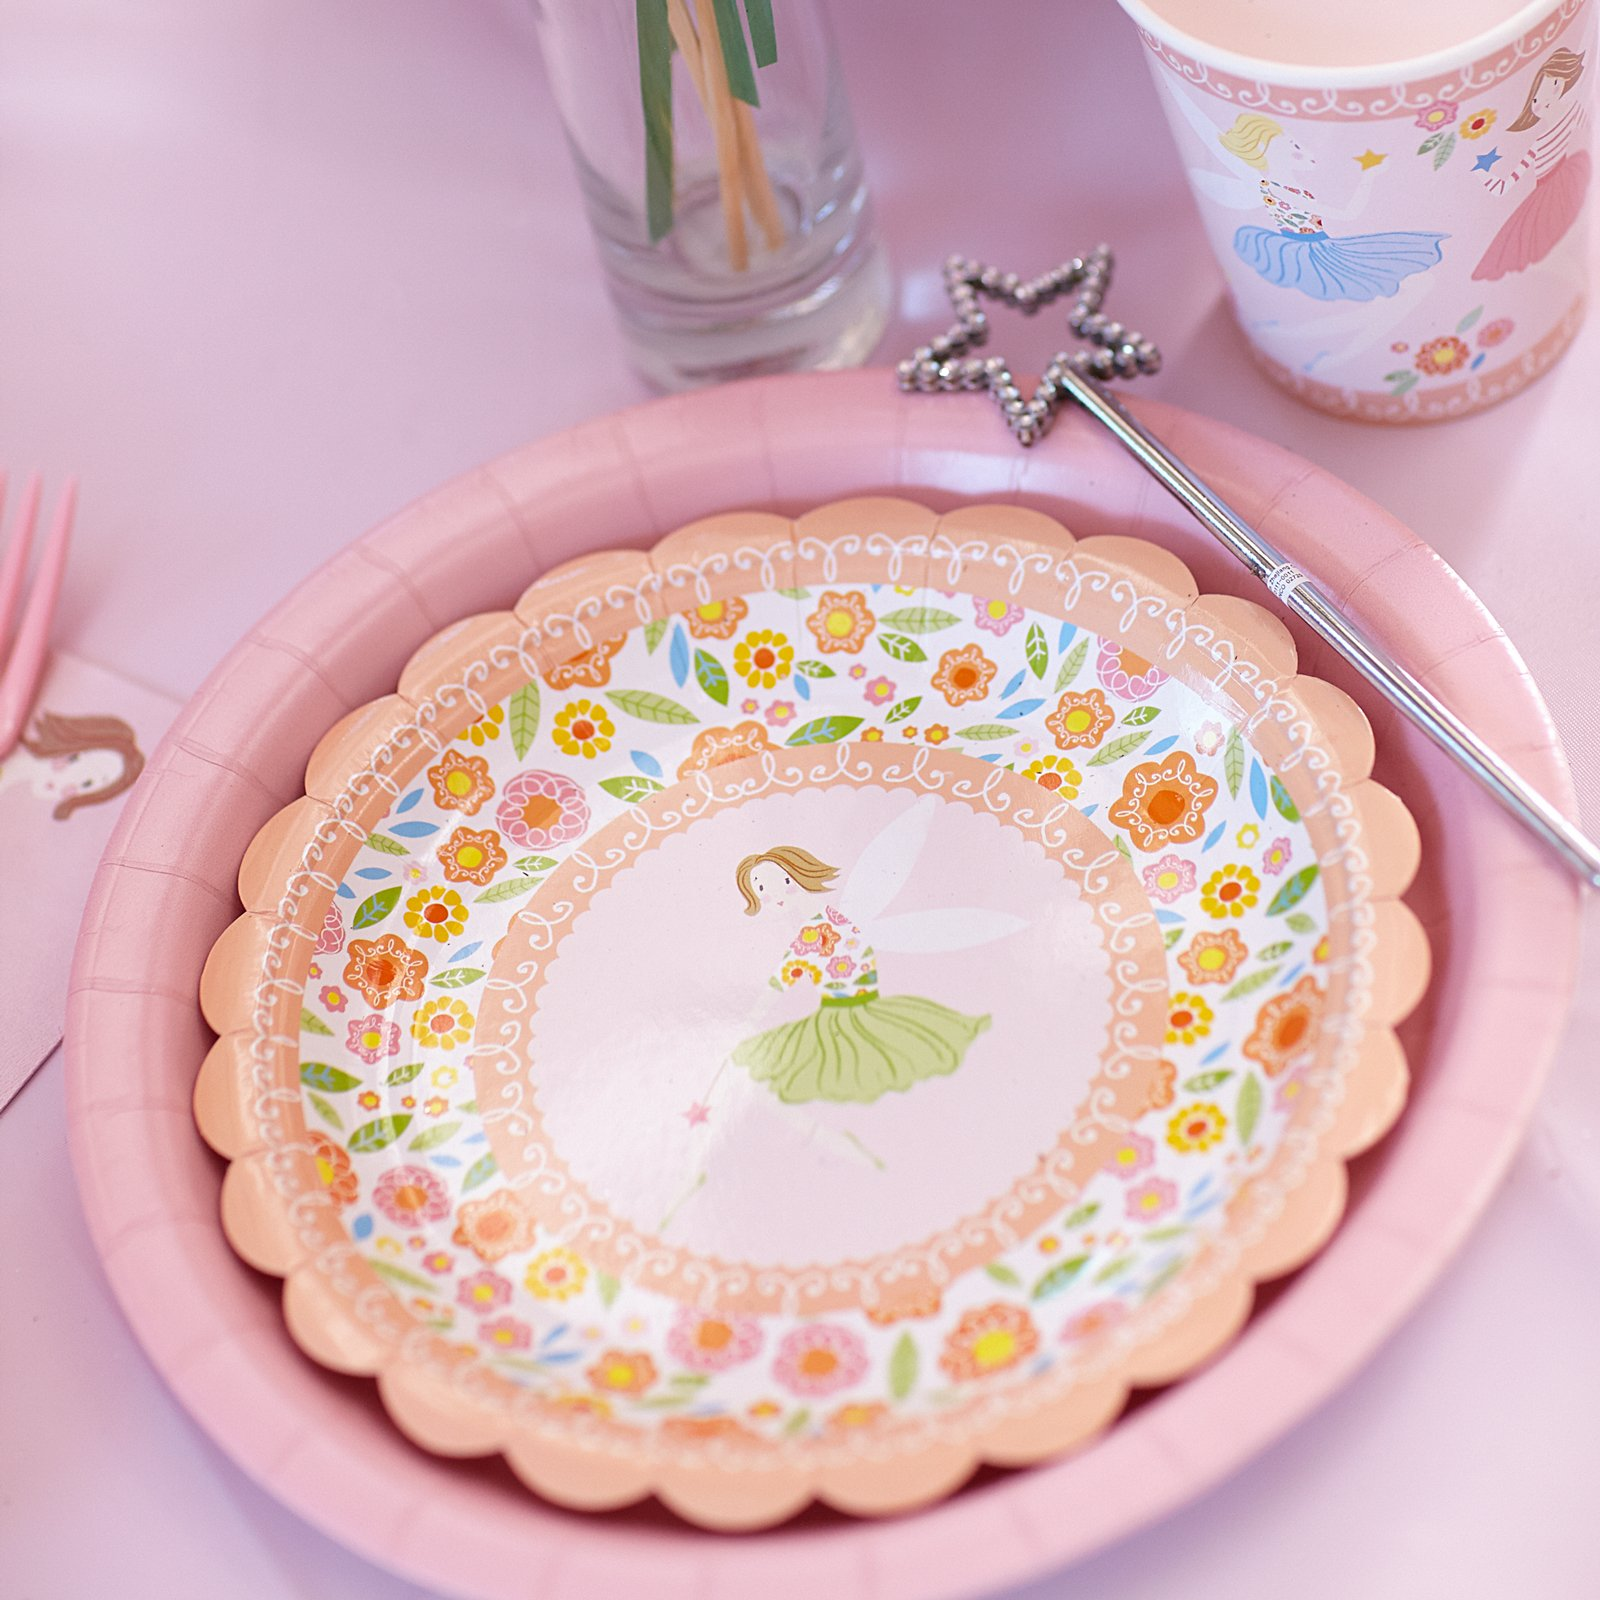 Decorate place settings with fairy themed paper cups plates napkins and the final touch? A magical star-topped wand of course! & You are In Good Company: GOOD LOOKS - A Fairy Magic Birthday Party